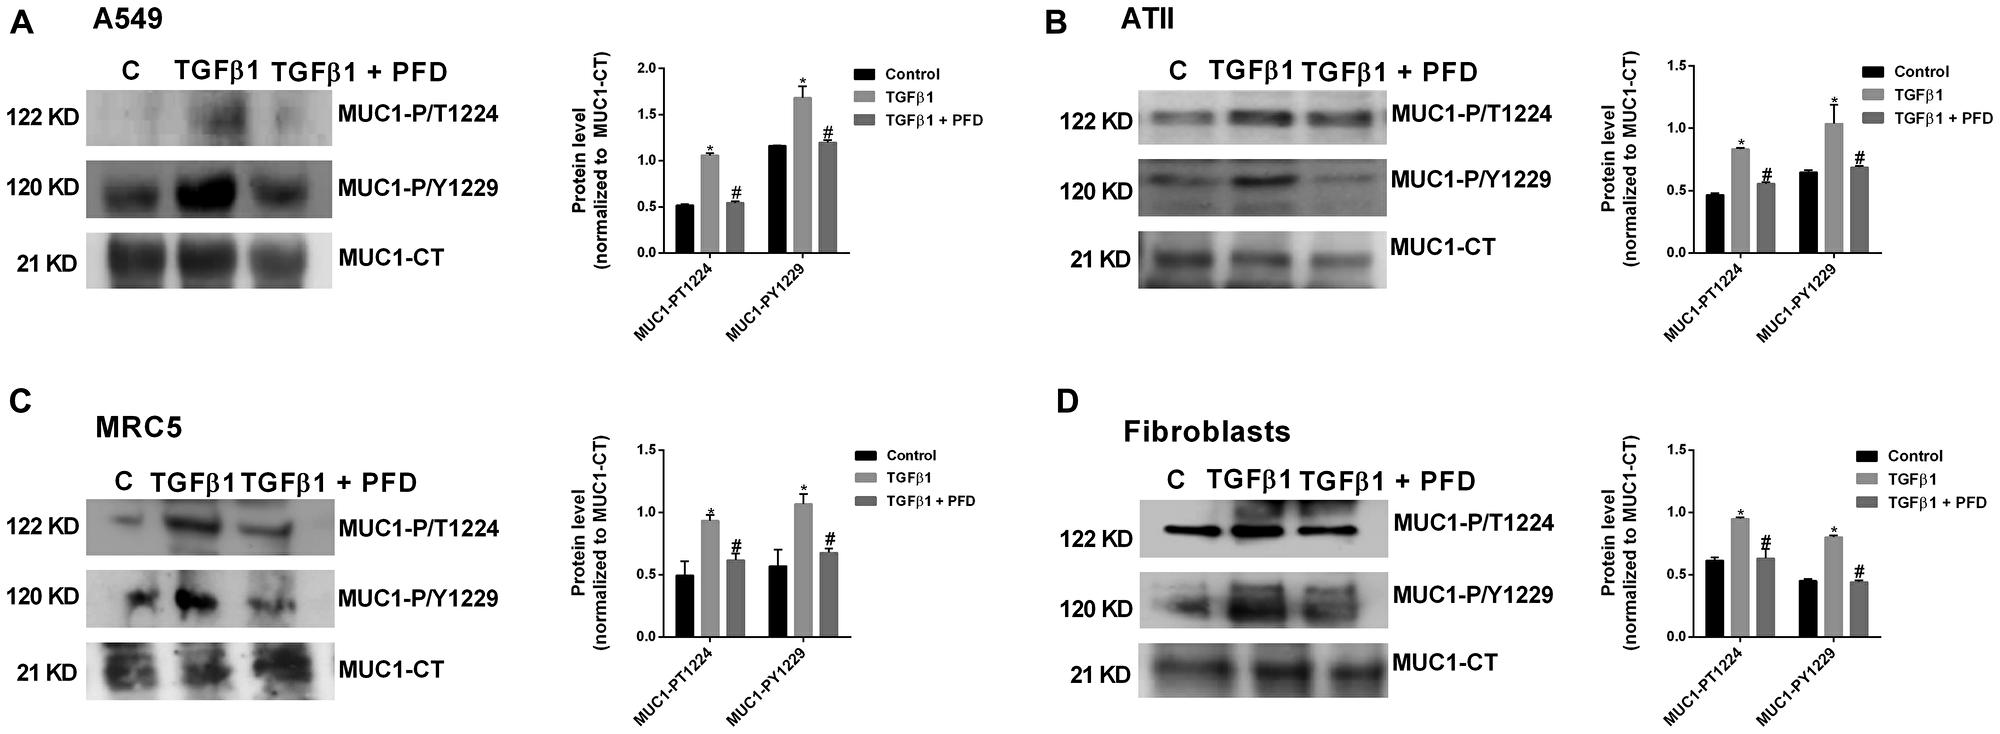 Pirfenidone (PFD) supresses the TGF-β1-induced MUC1-cytoplasmic tail (CT) bioactivation: ATII cells were isolated from the lungs of control subjects, and lung fibroblasts were isolated from the lungs of IPF patients.